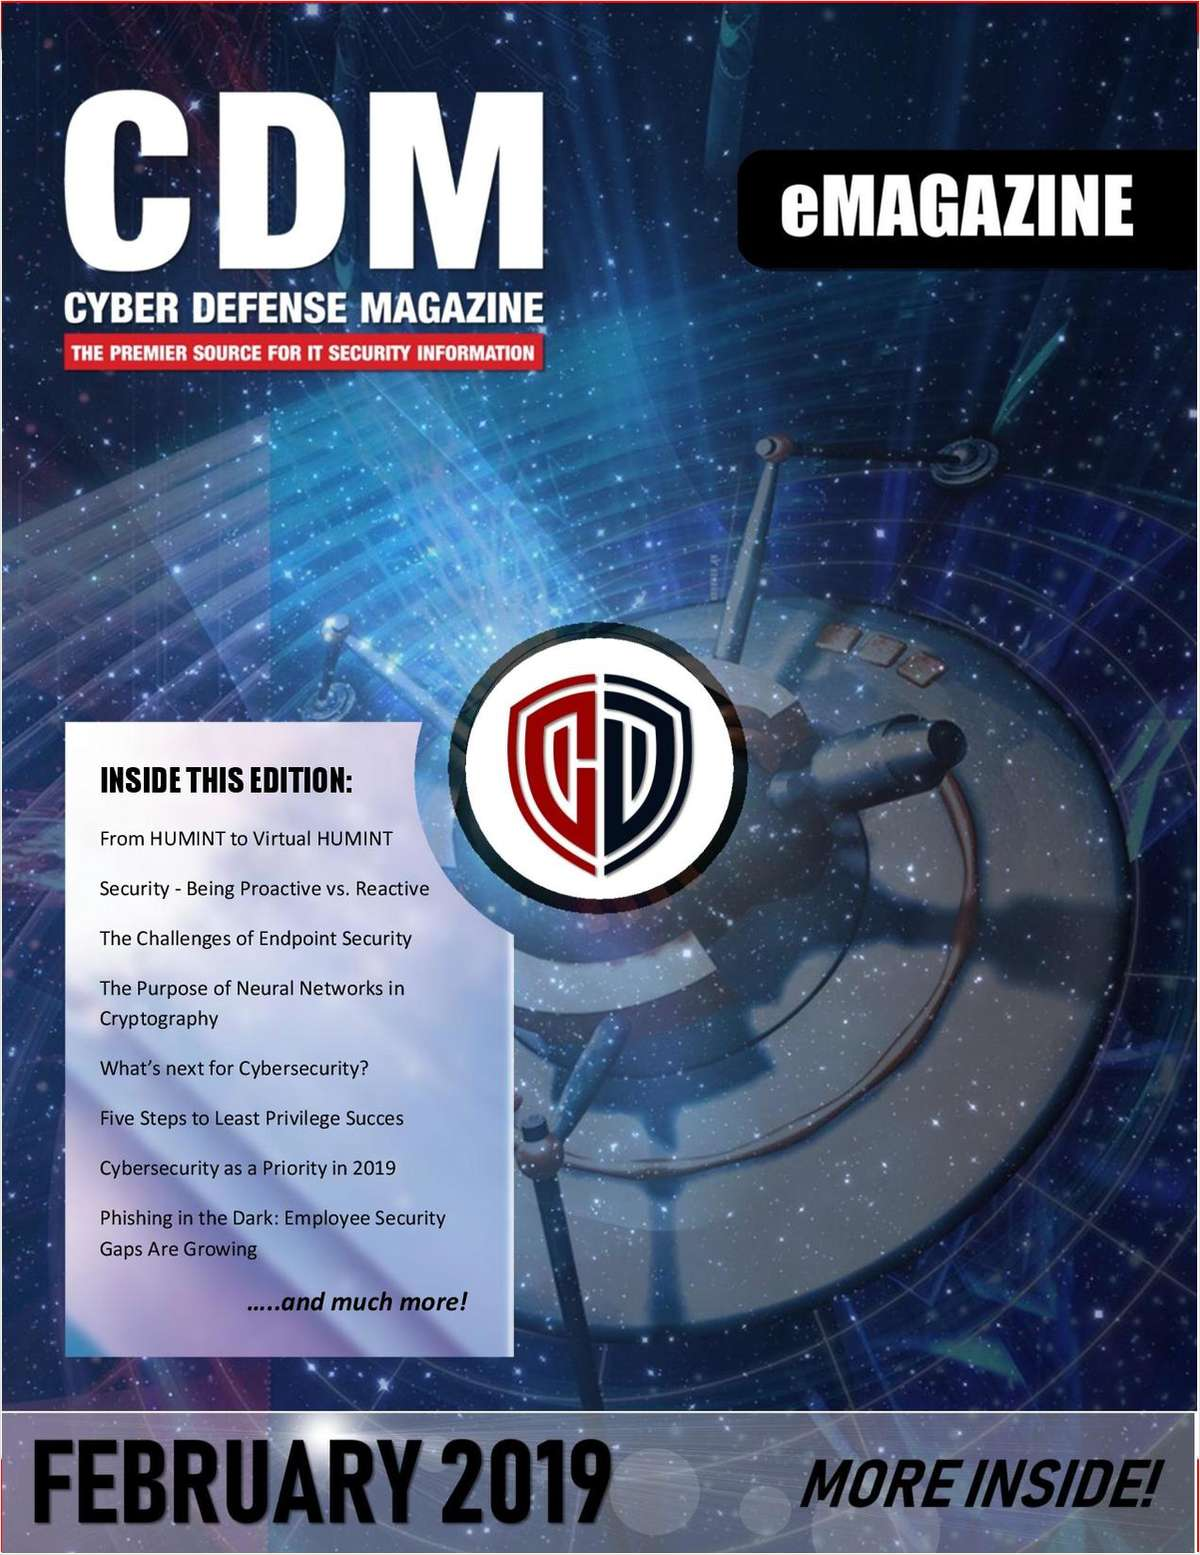 Cyber Defense eMagazine - February 2019 Edition